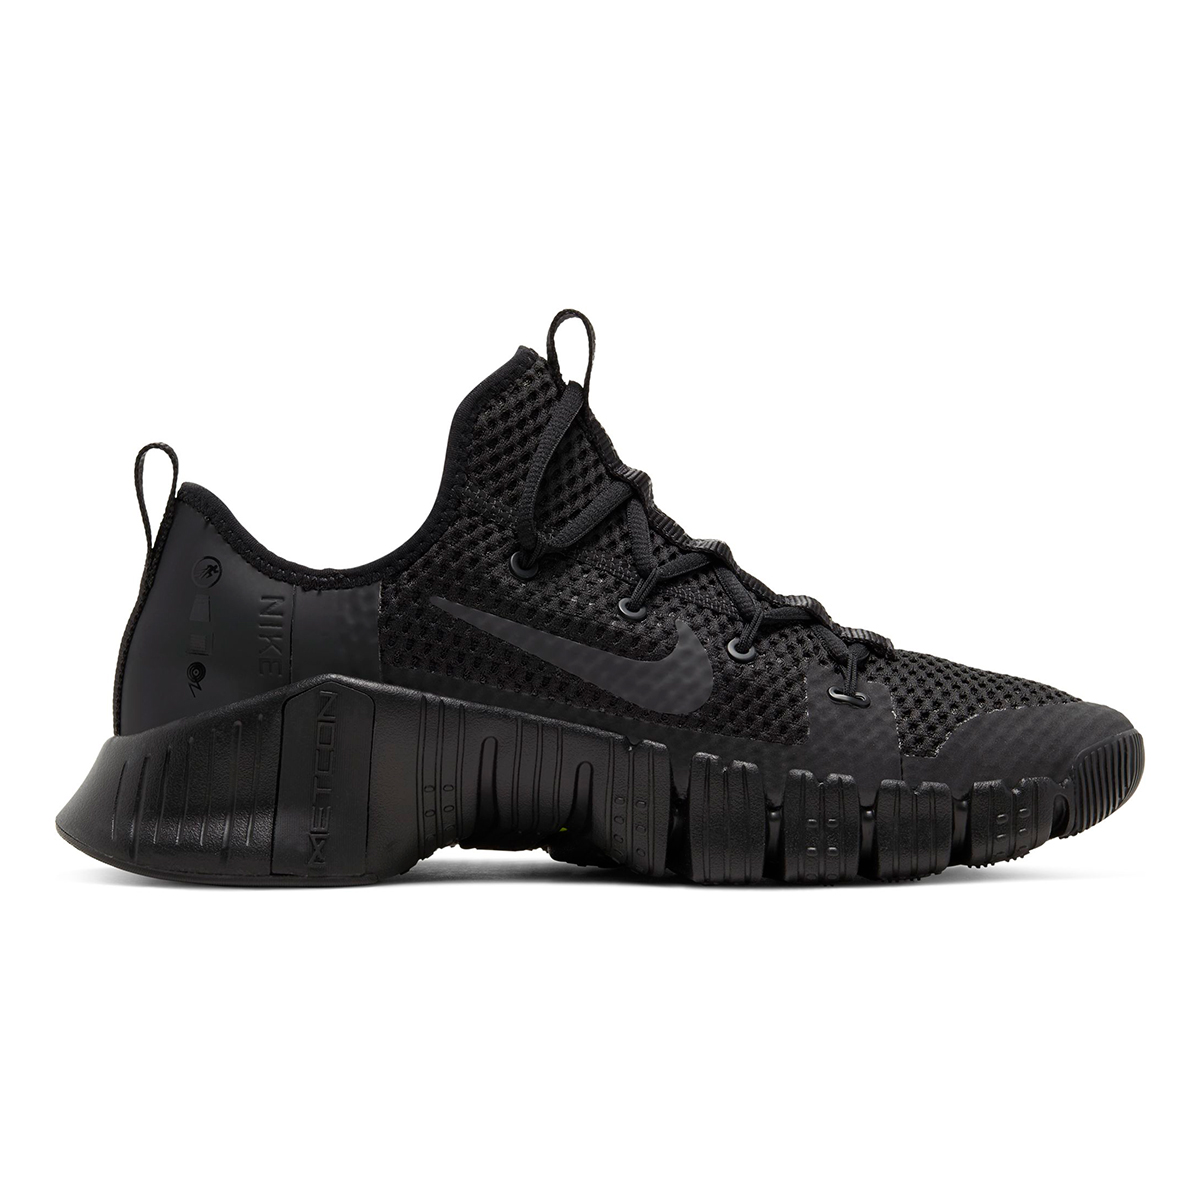 Nike Free Metcon 3 Training Shoes - Color: Black/Black/Volt/Anthracite - Size: 5 - Width: Regular, Black/Volt/Anthracite, large, image 2